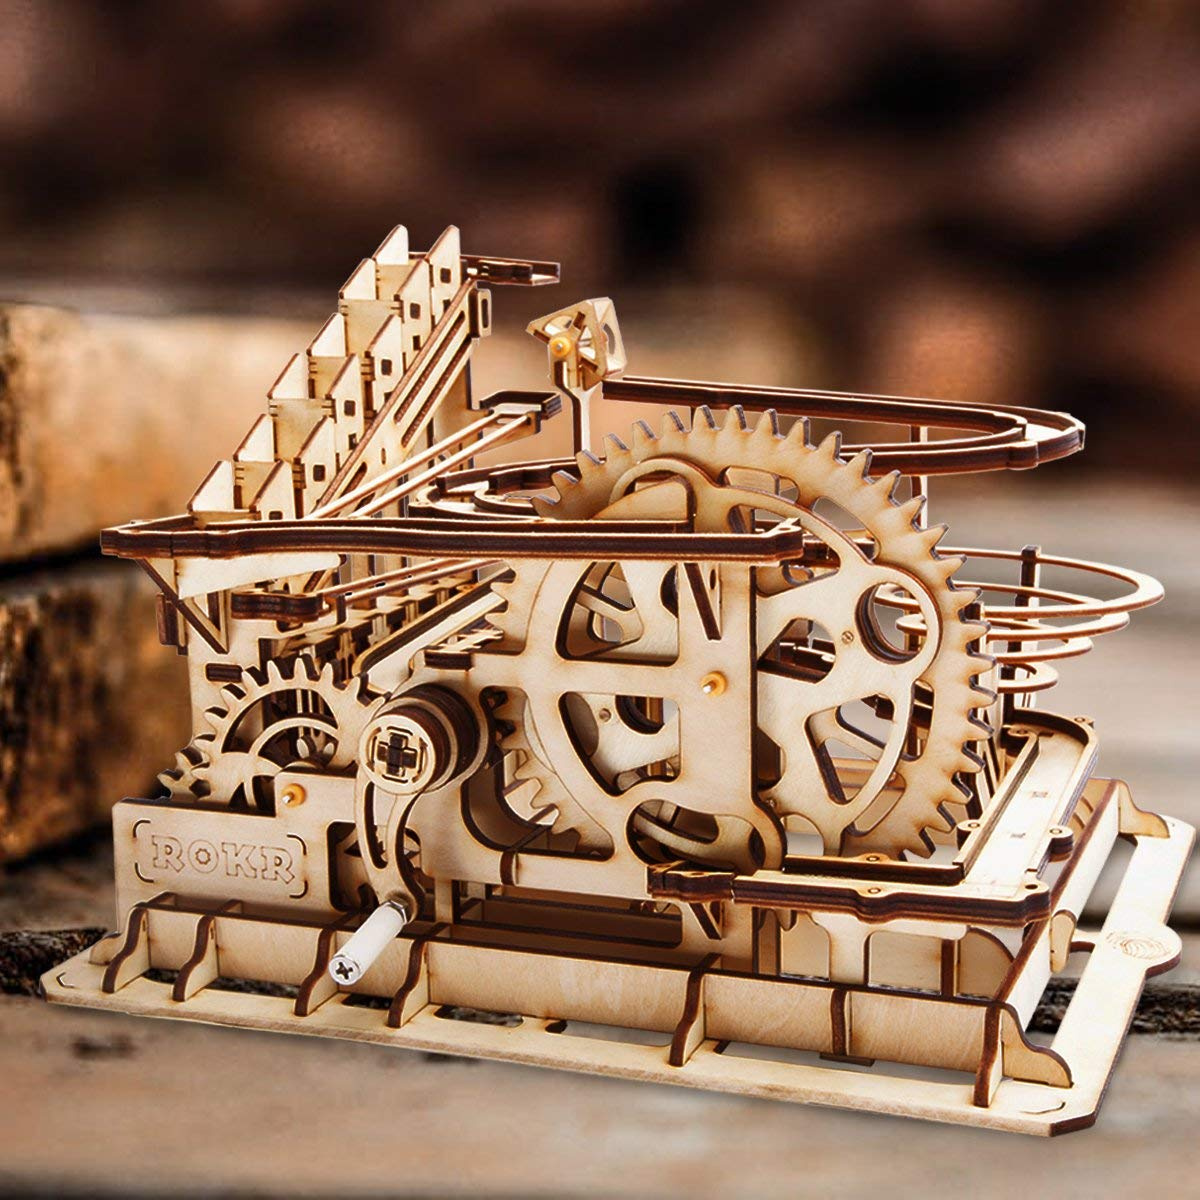 ROKR Mechanical 3D Wooden Puzzle Model Kit Adult Craft Set Educational Toy Building Engineering Set Christmas//New Year//Birthday//Thanksgiving Day Gift for Adults Boys Kids Age 14+ Waterwheel Coaster